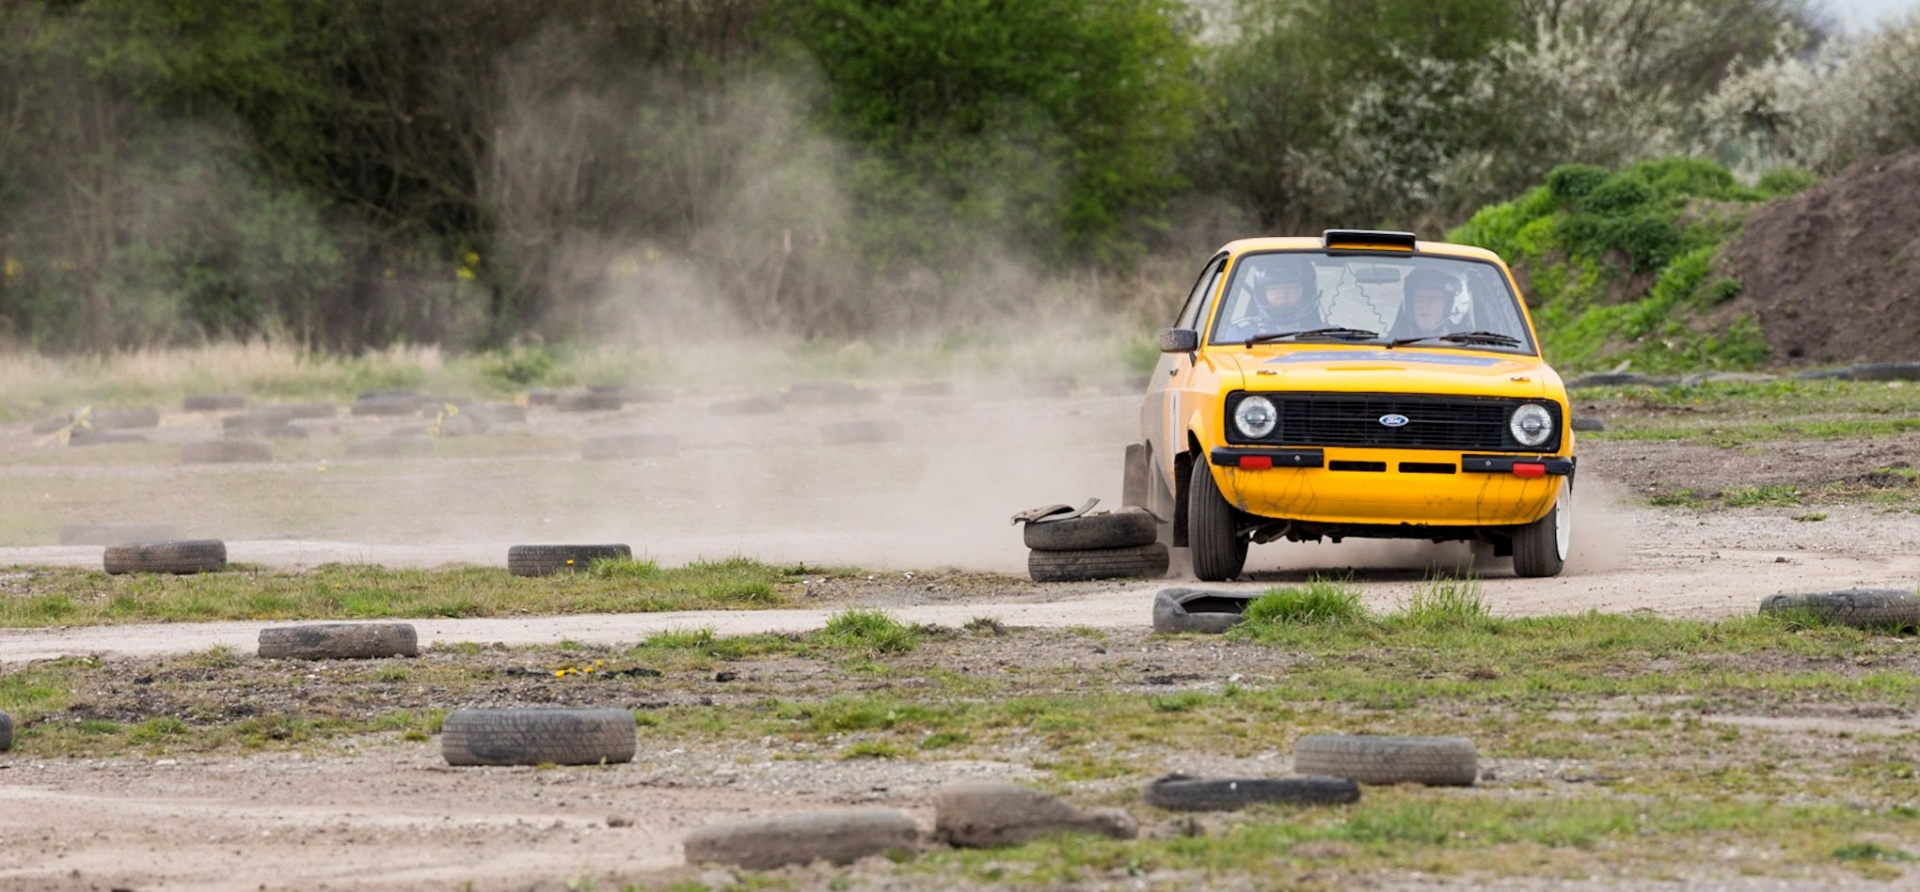 Full Day Rally Driving Introductory Experience In Yorkshire